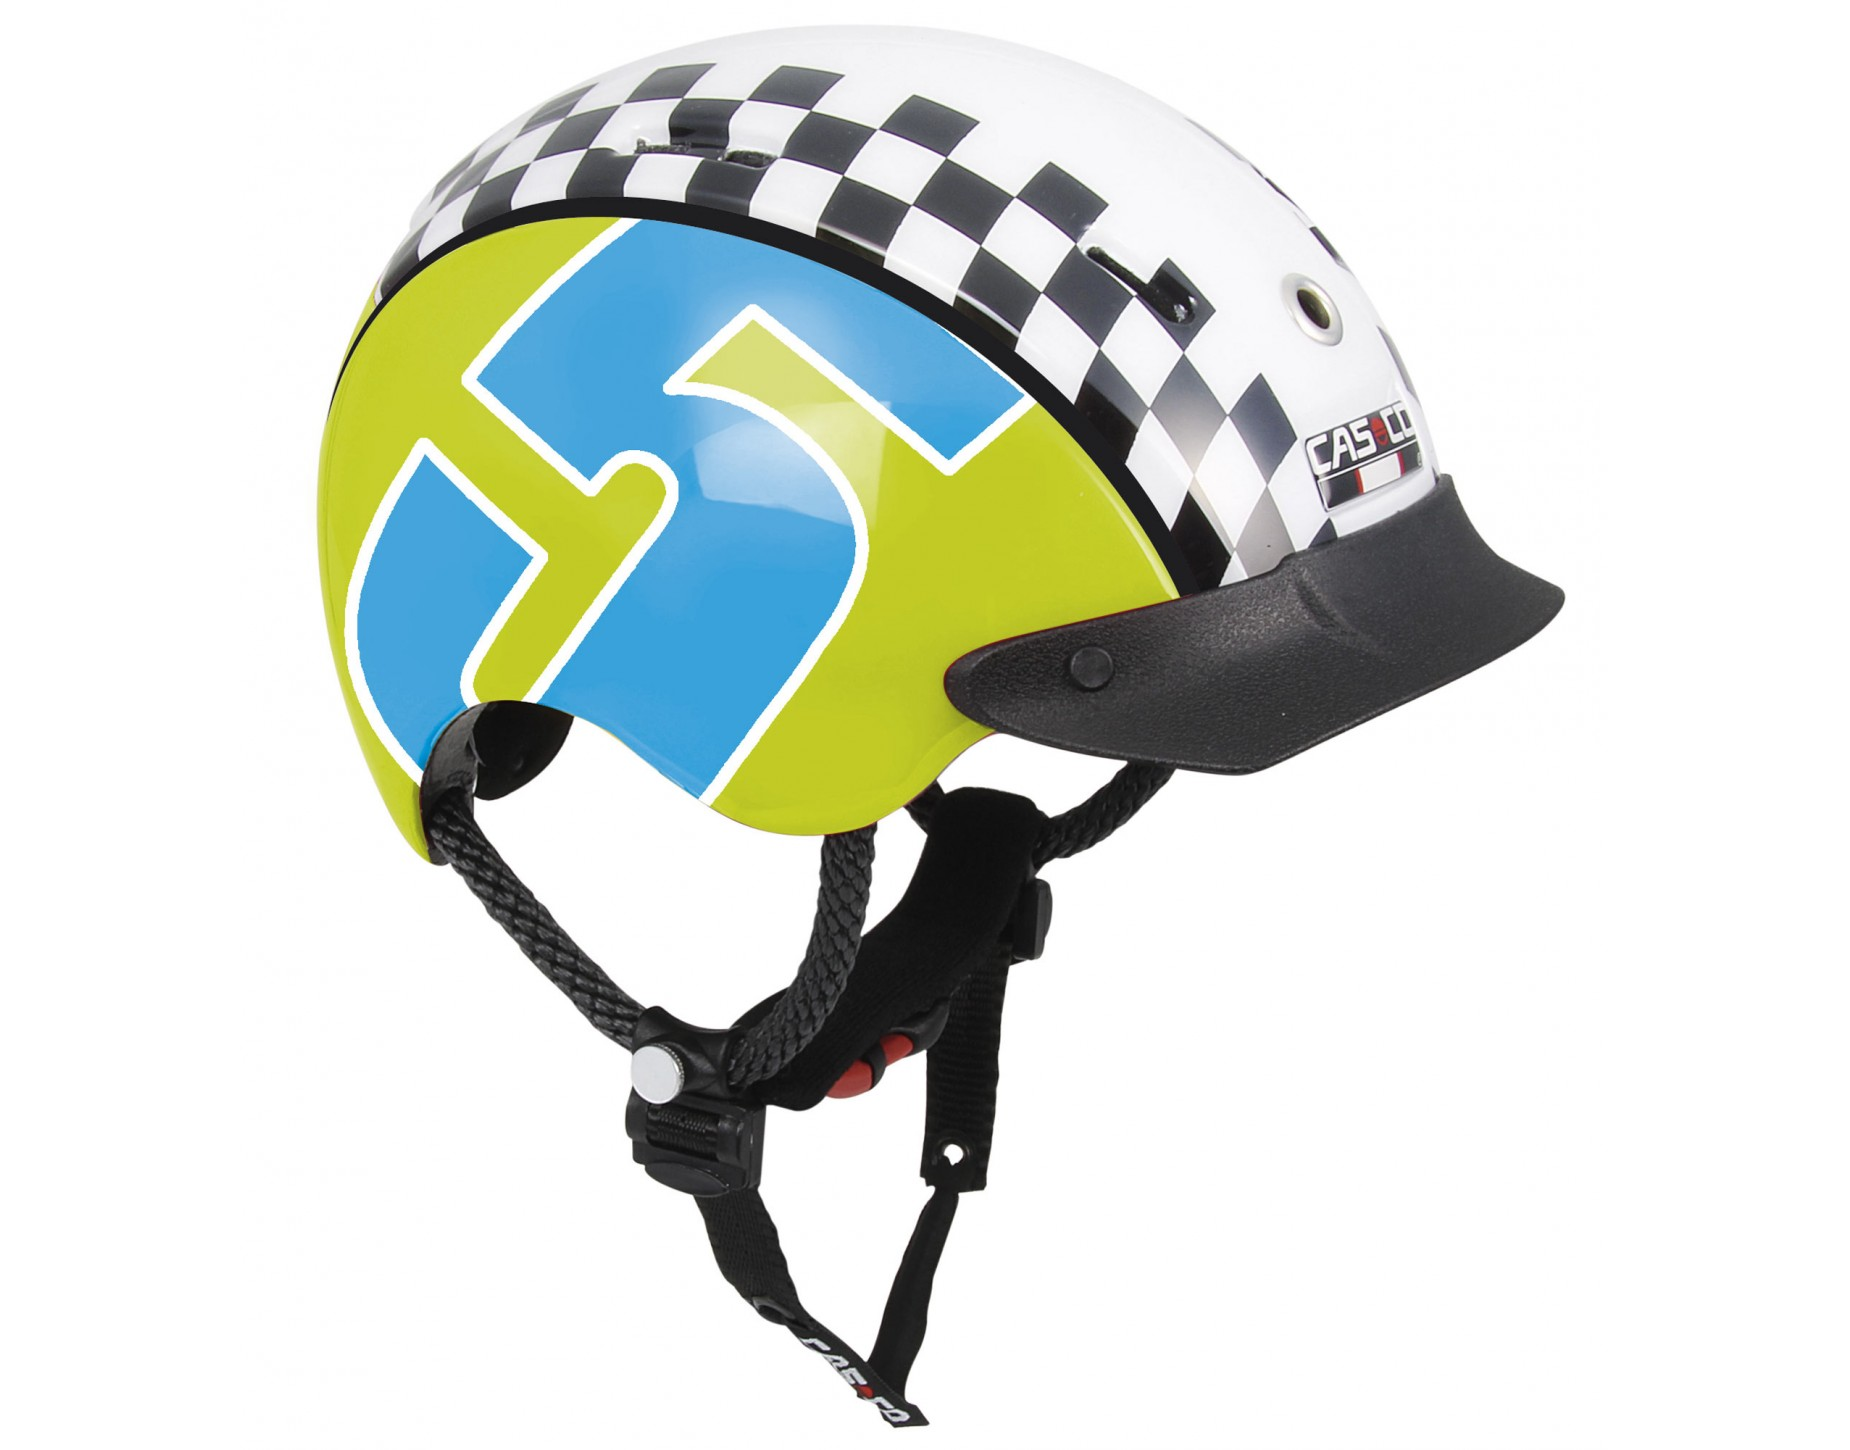 CASCO Mini Generation kinderhelm Racer 5 grün blau